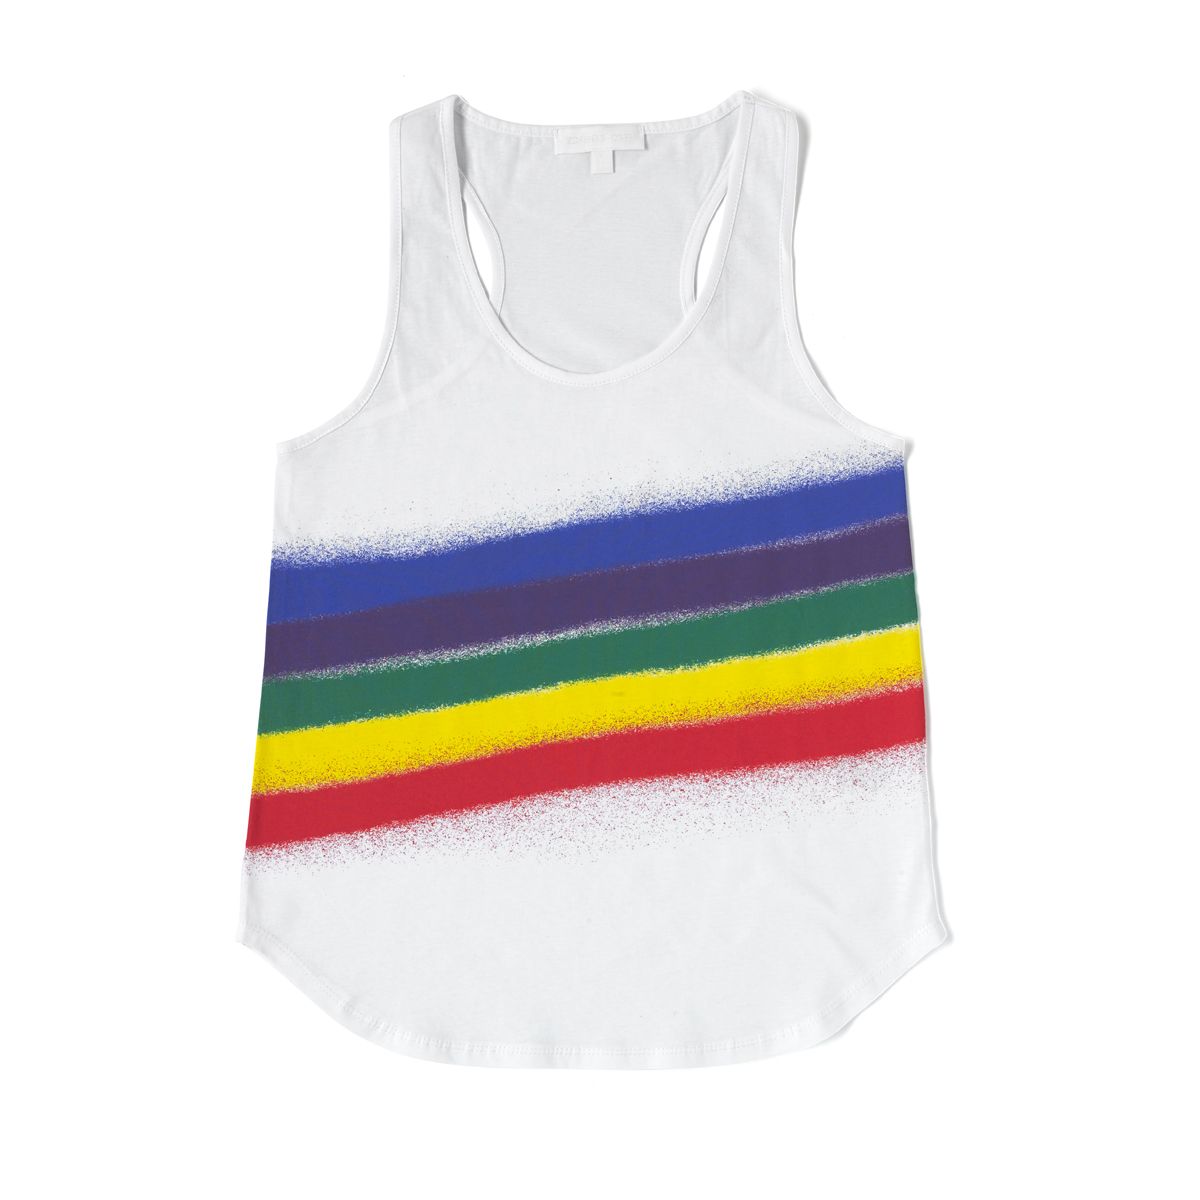 Rainbow Spray Printed Vest.